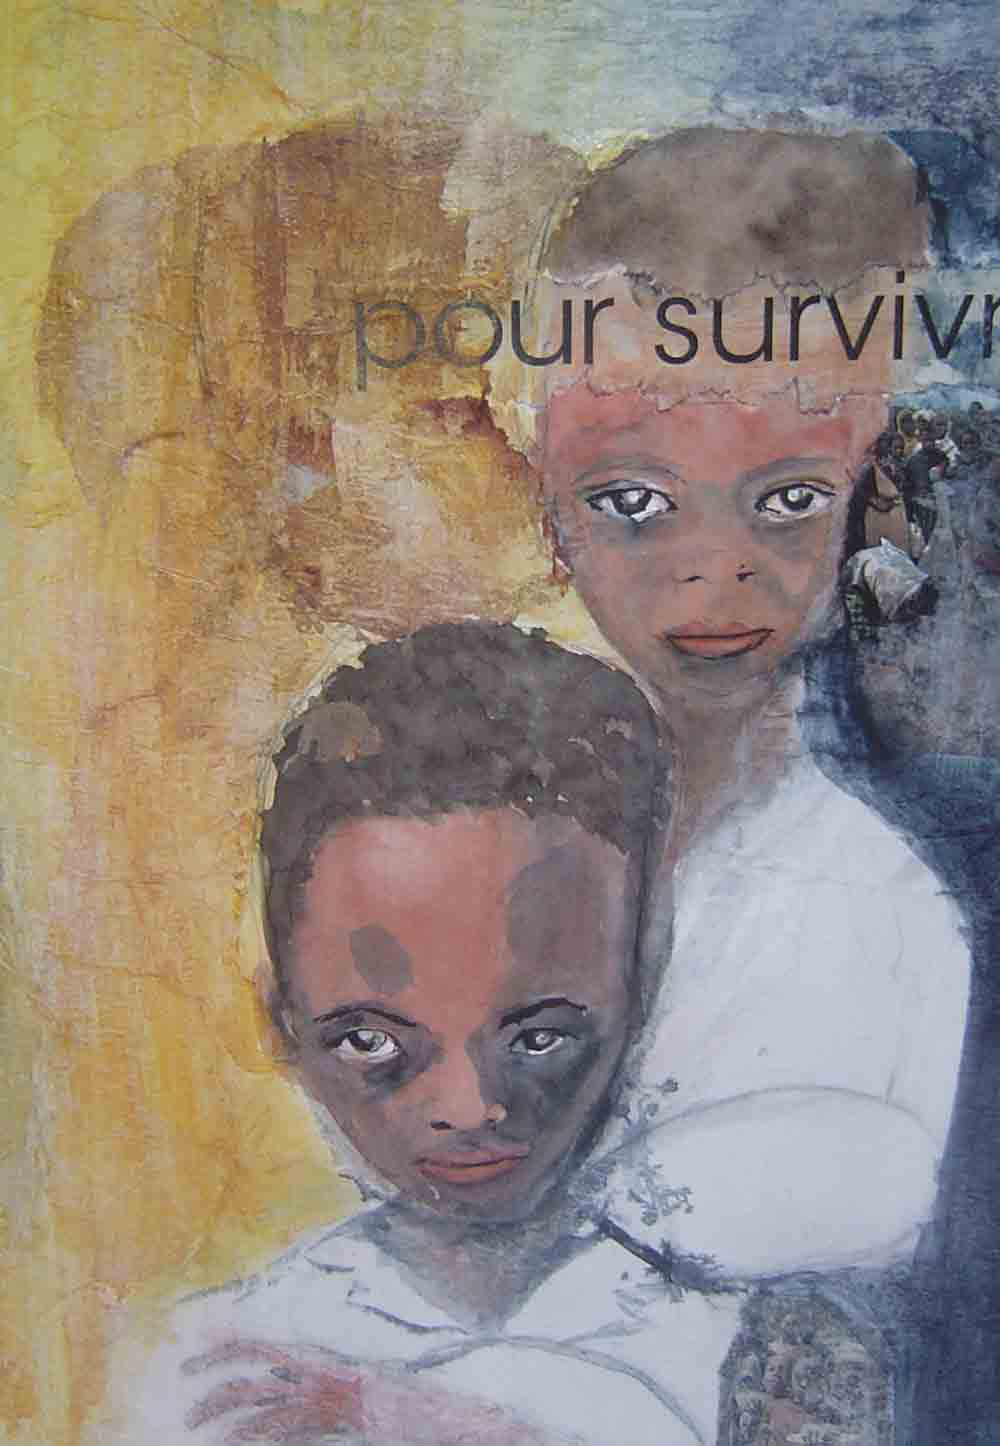 Artwork >> Mireille Dubois-Vanhove >> for survivor entered sufferings up and Deprivations